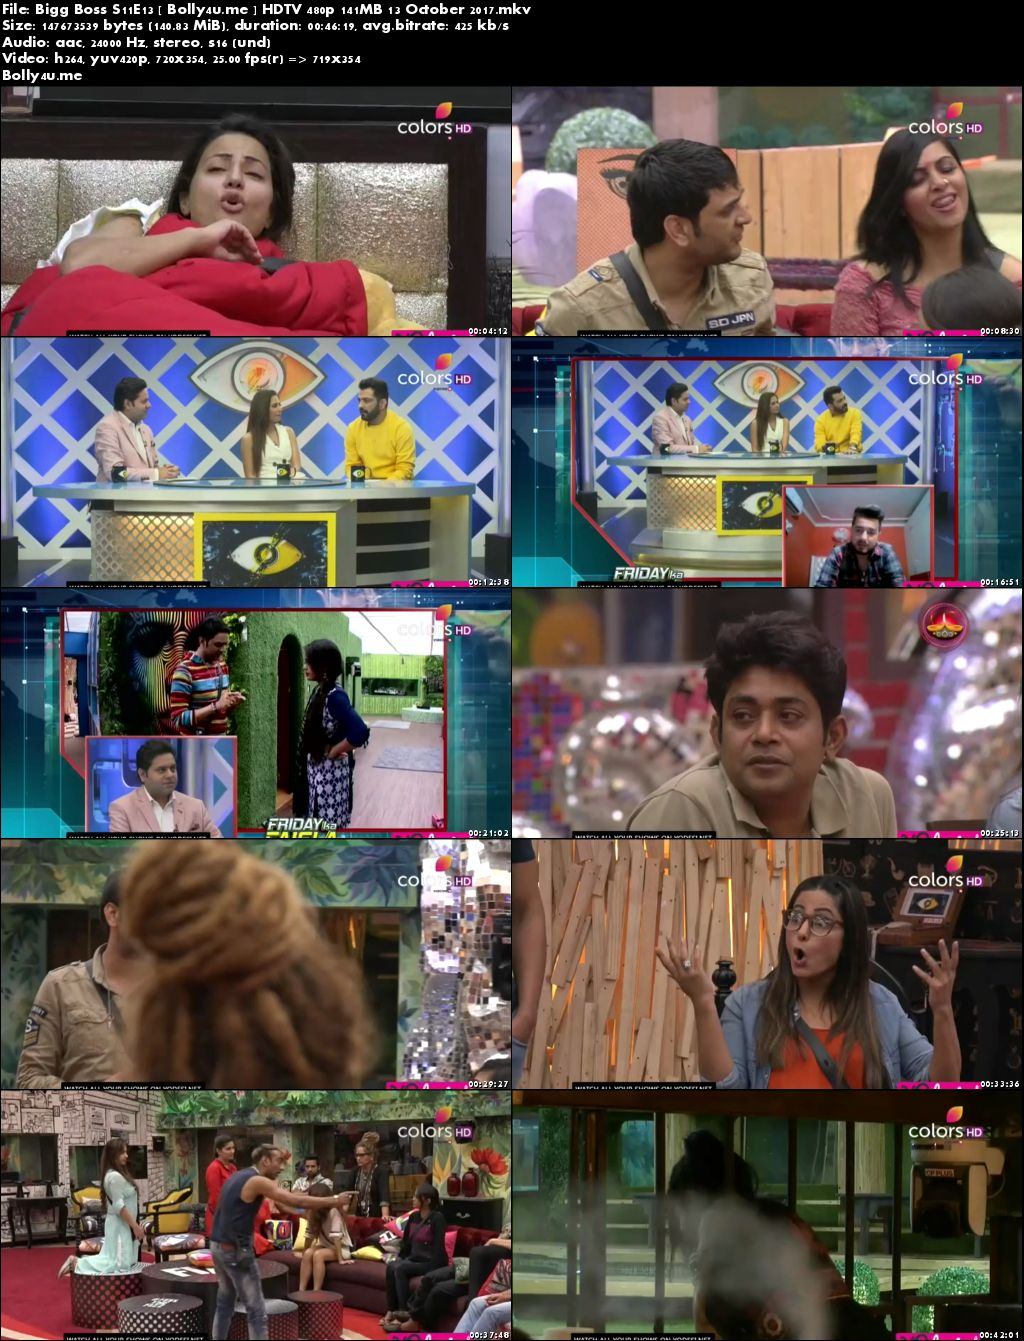 Bigg Boss S11E13 HDTV 480p 140MB 13 Oct 2017 Download